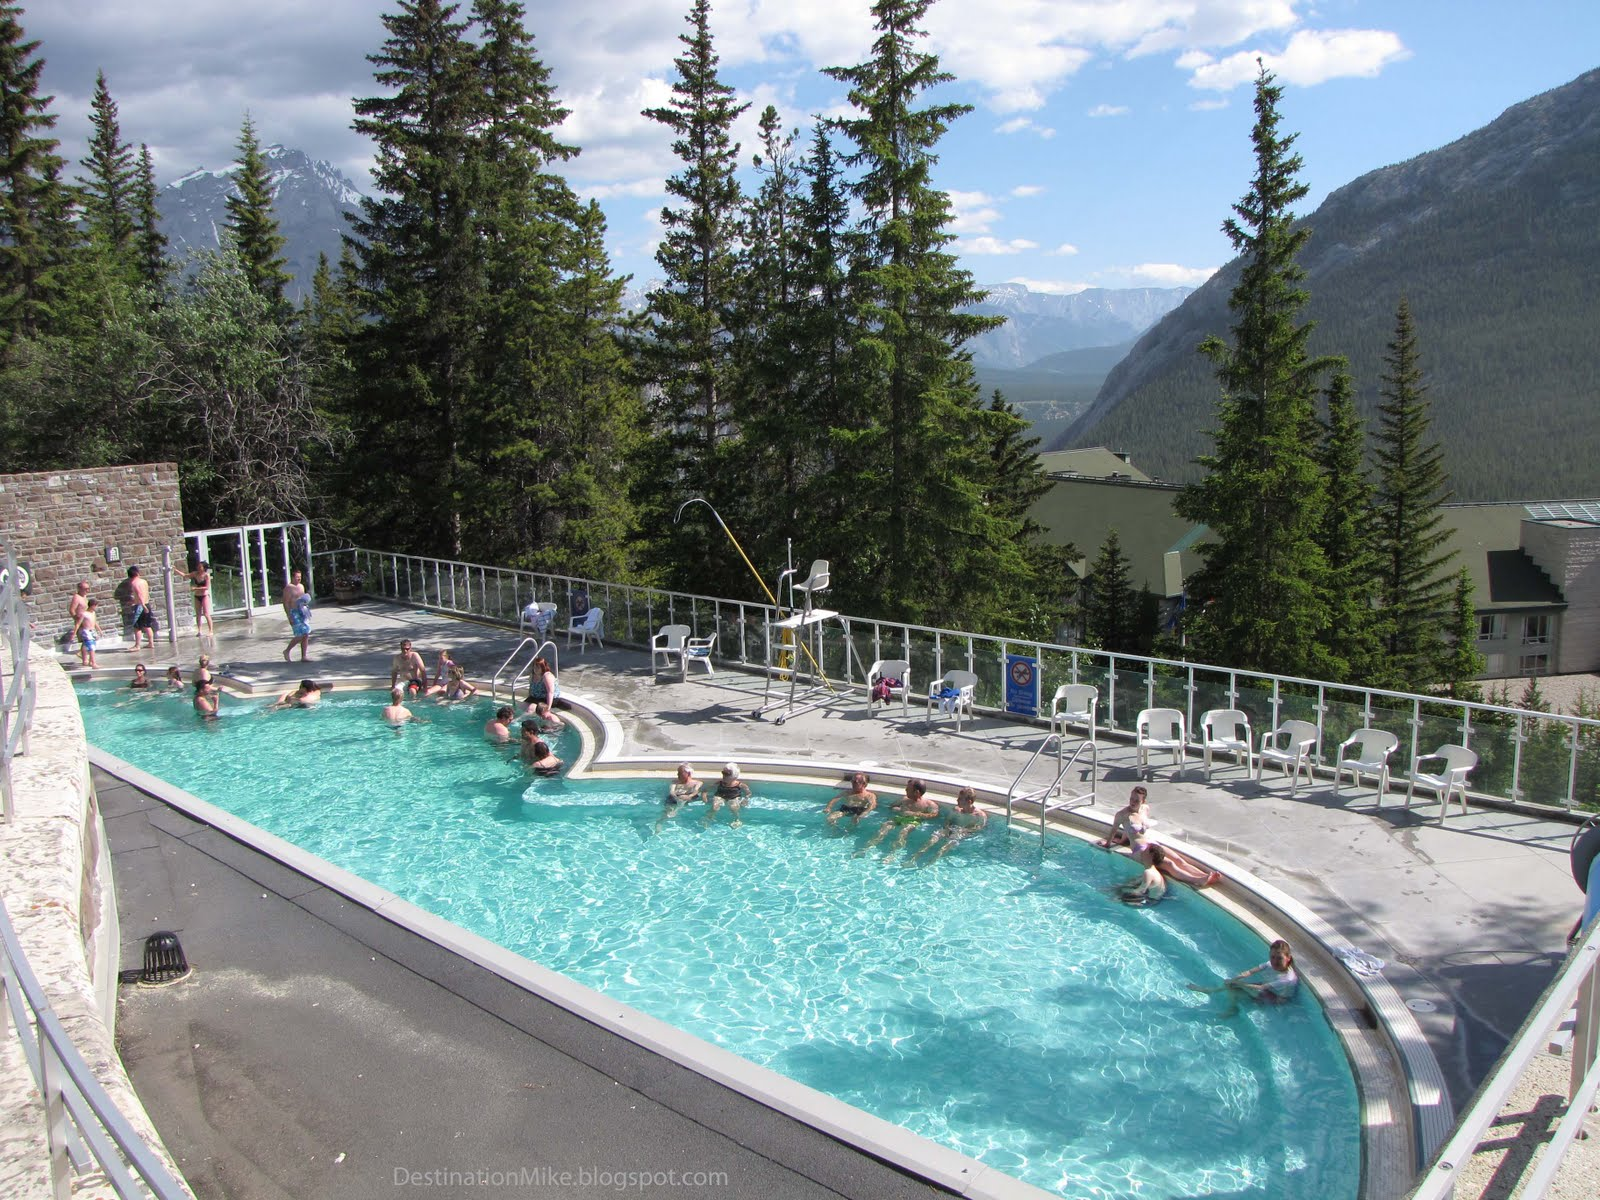 Turismo-Canada-Calgary-Banff-Upper-Hot-Springs-2